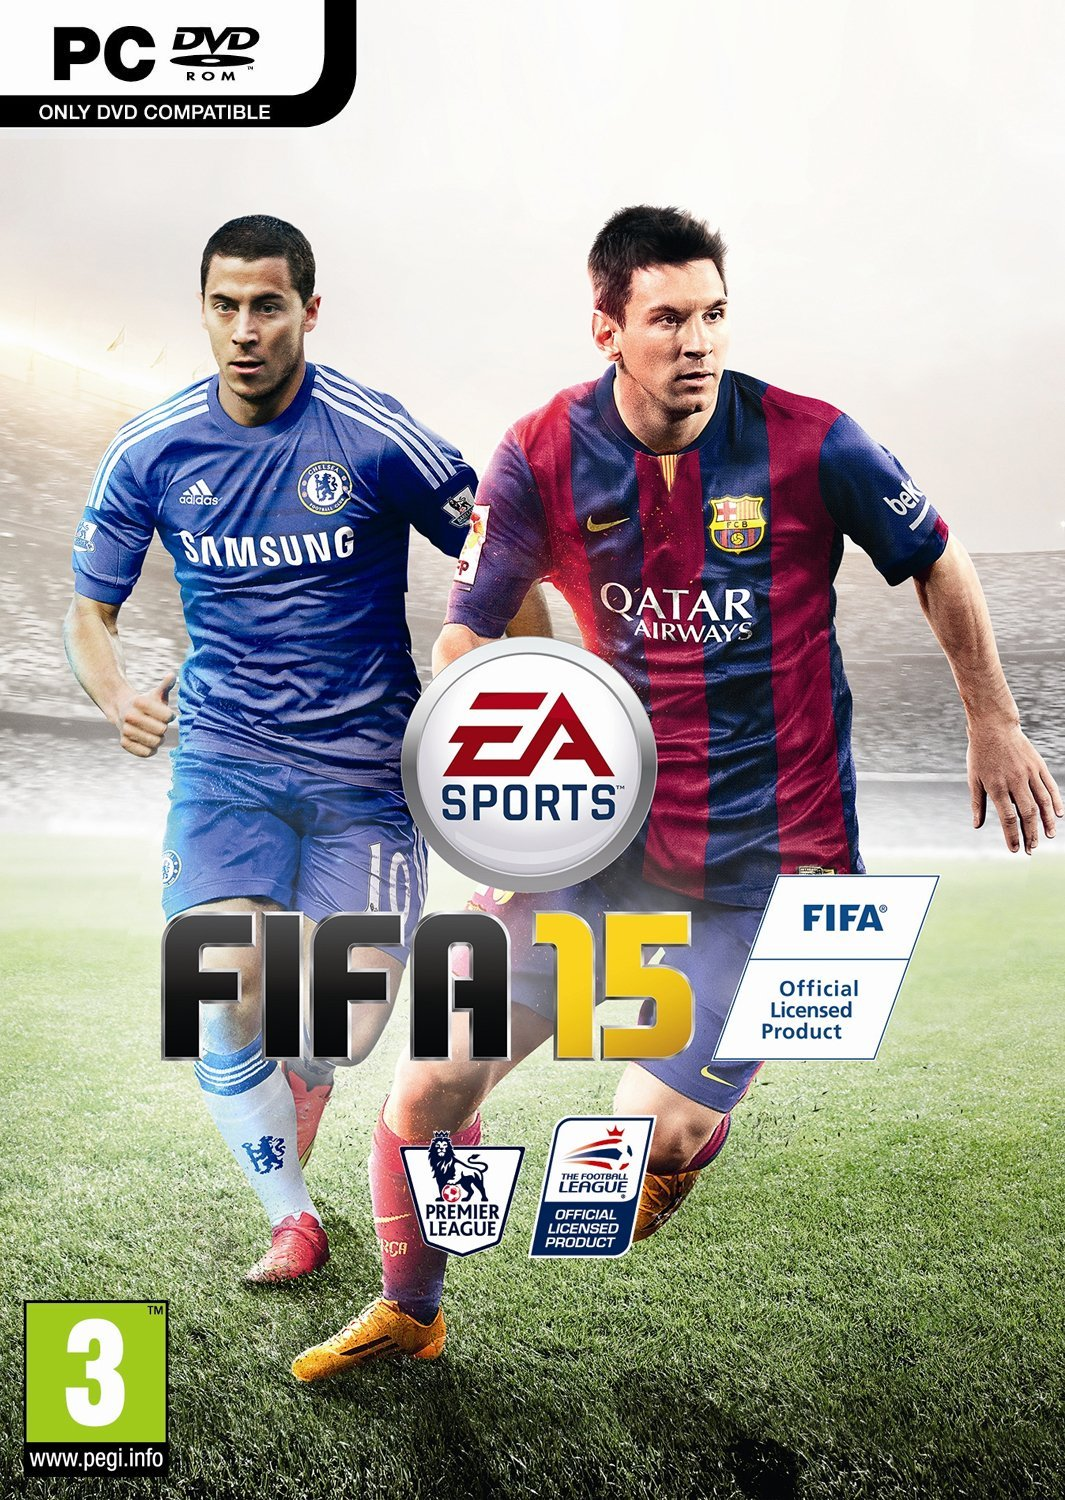 fifa 15 crack free download for windows 10bfdcm